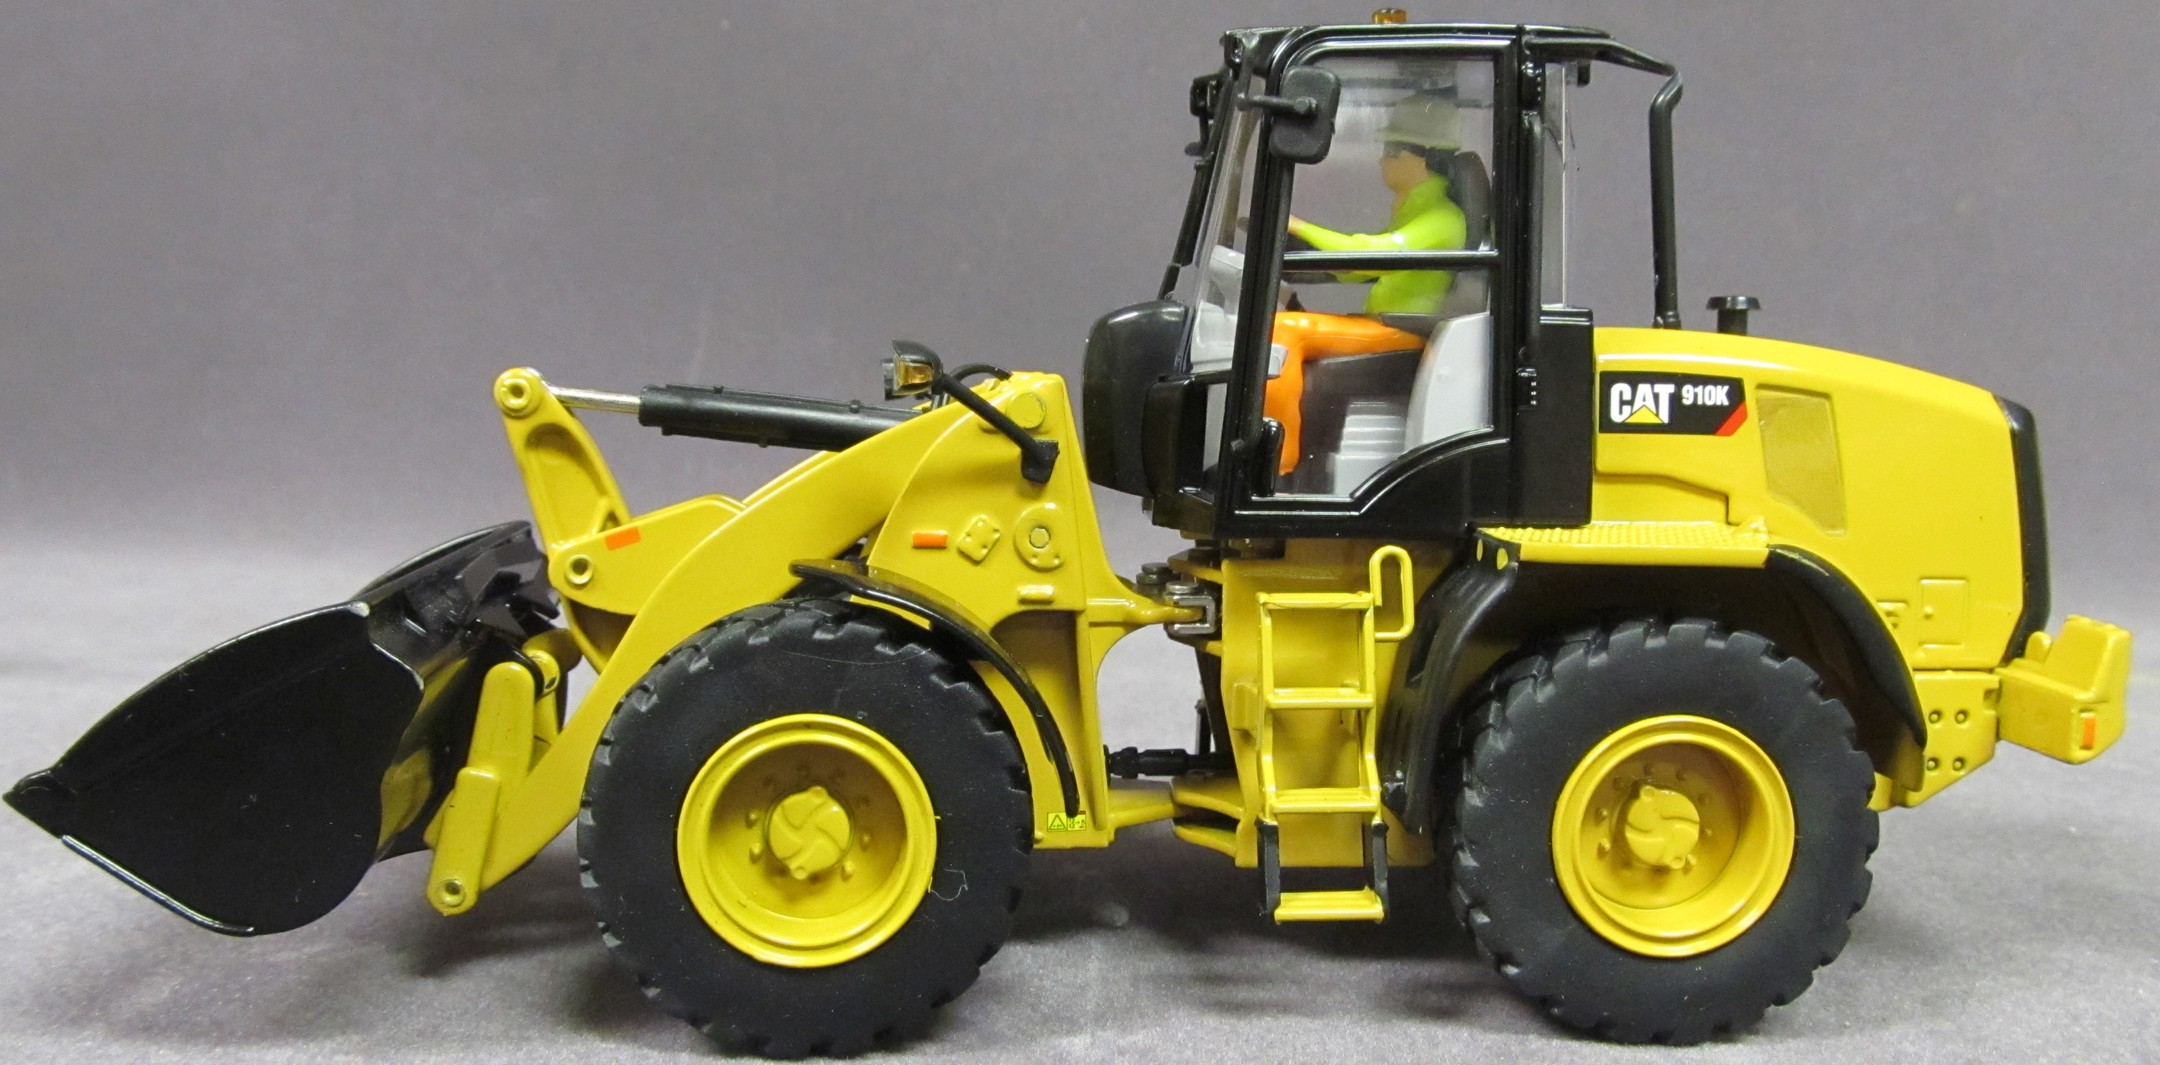 Caterpillar 910K Wheel Loader